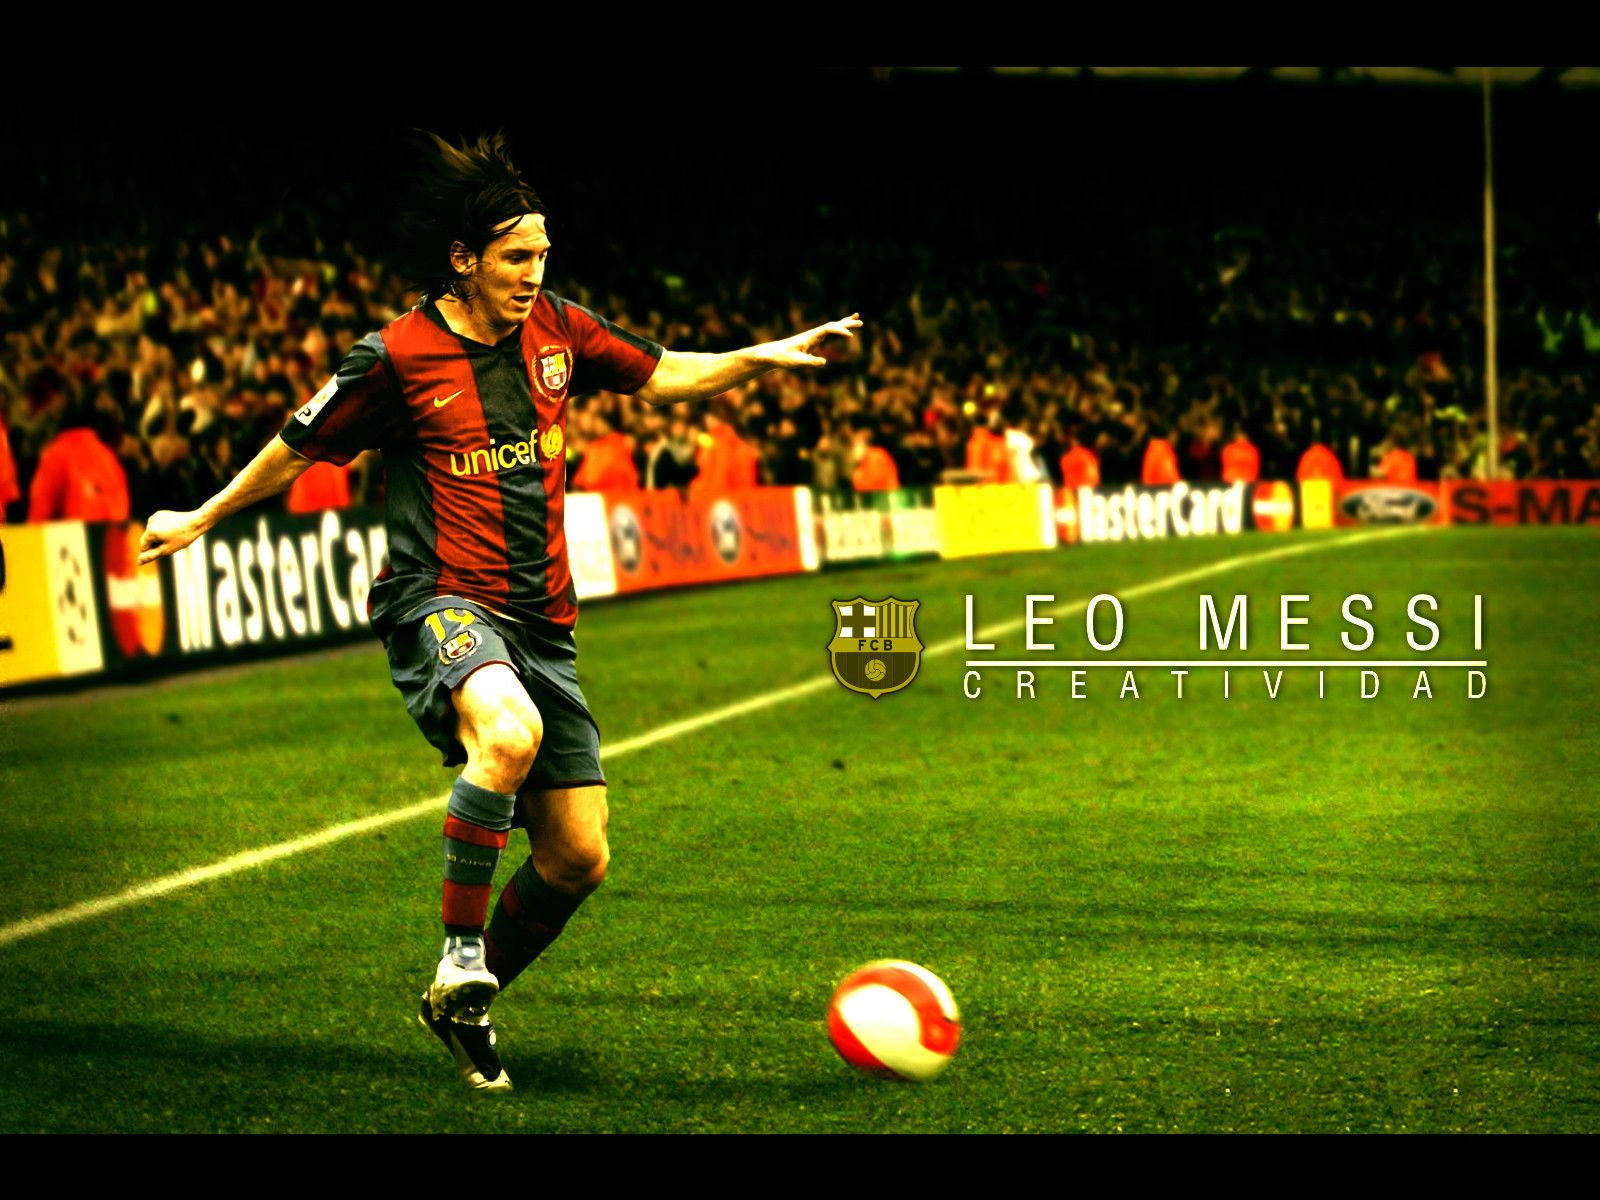 Lionel Messi Wallpapers HD 2015 1600x1200